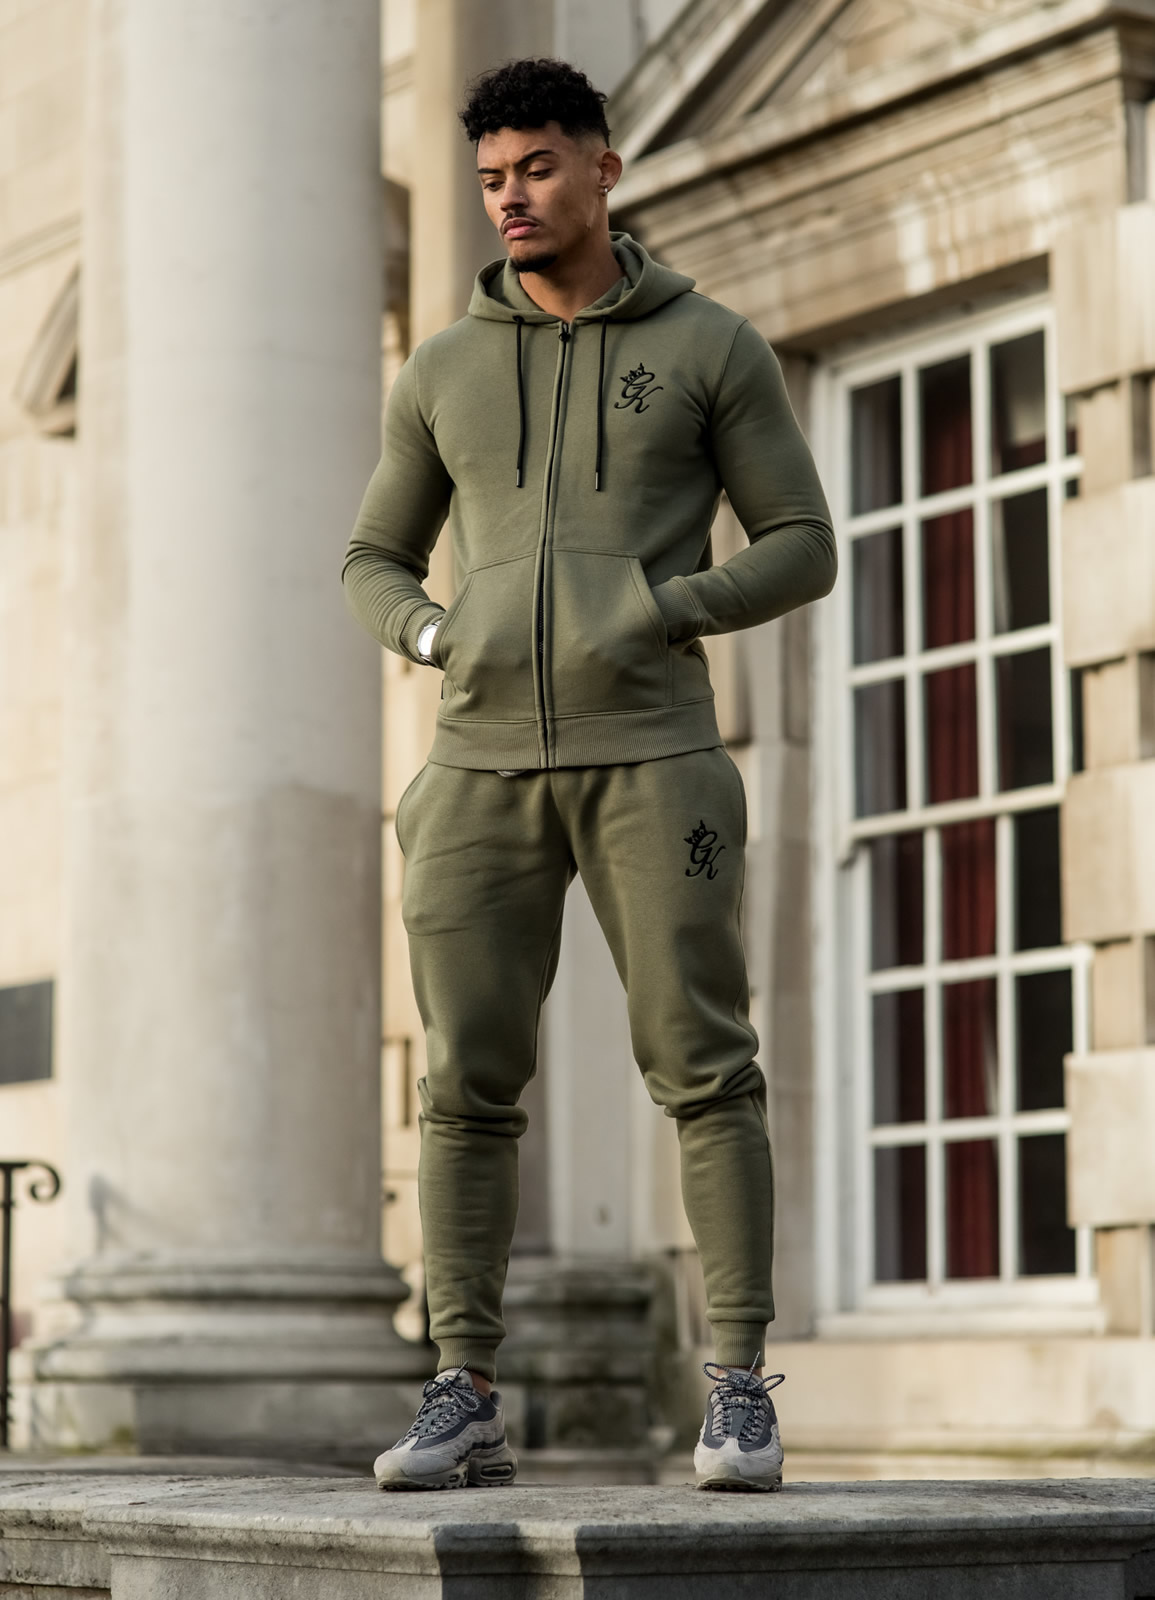 Our collaborative team is introducing athletes to an unbelievable range of pro-active fitness costume and essential gears designed for the new generation men's wear and advanced world.